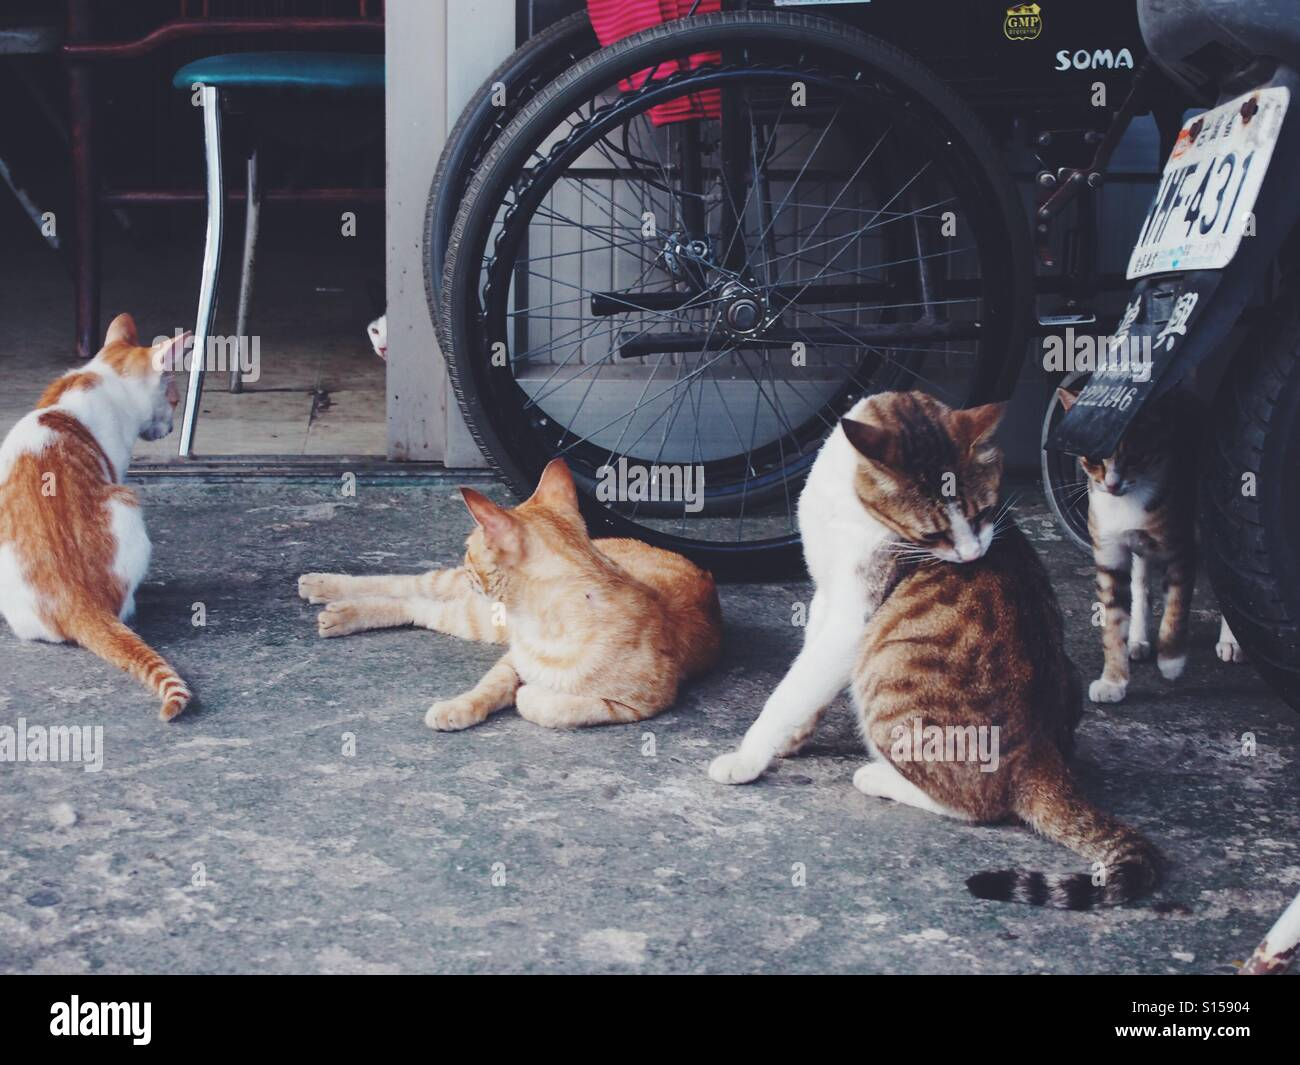 Counting how many cats in the photo. - Stock Image